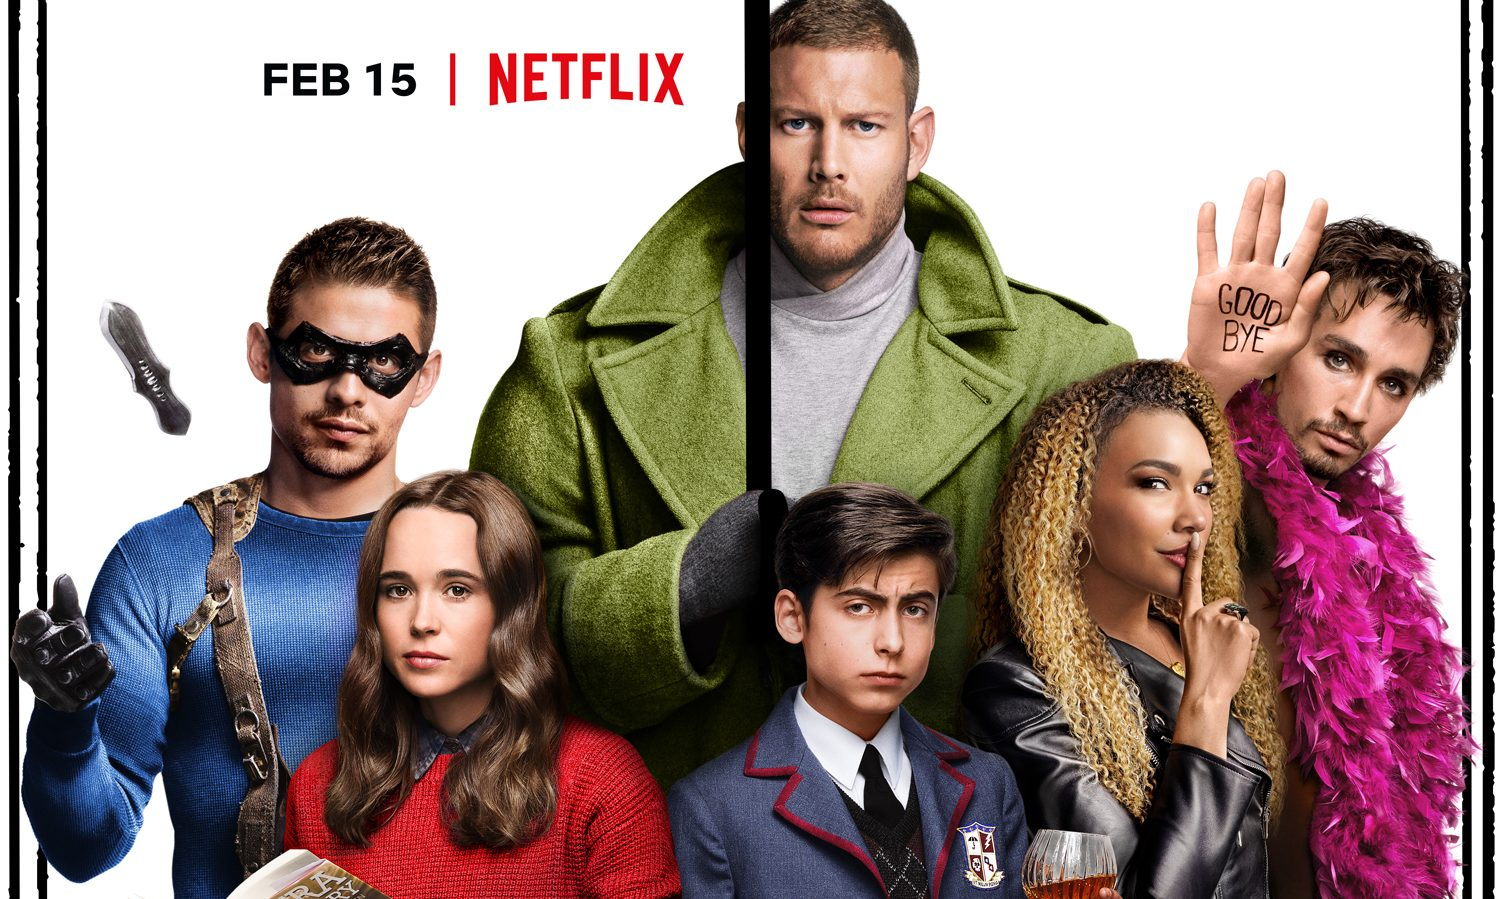 The Umbrella Academy 'gets renewed for season 2' as Gerard Way breathes life into Netflix after Marvel cull